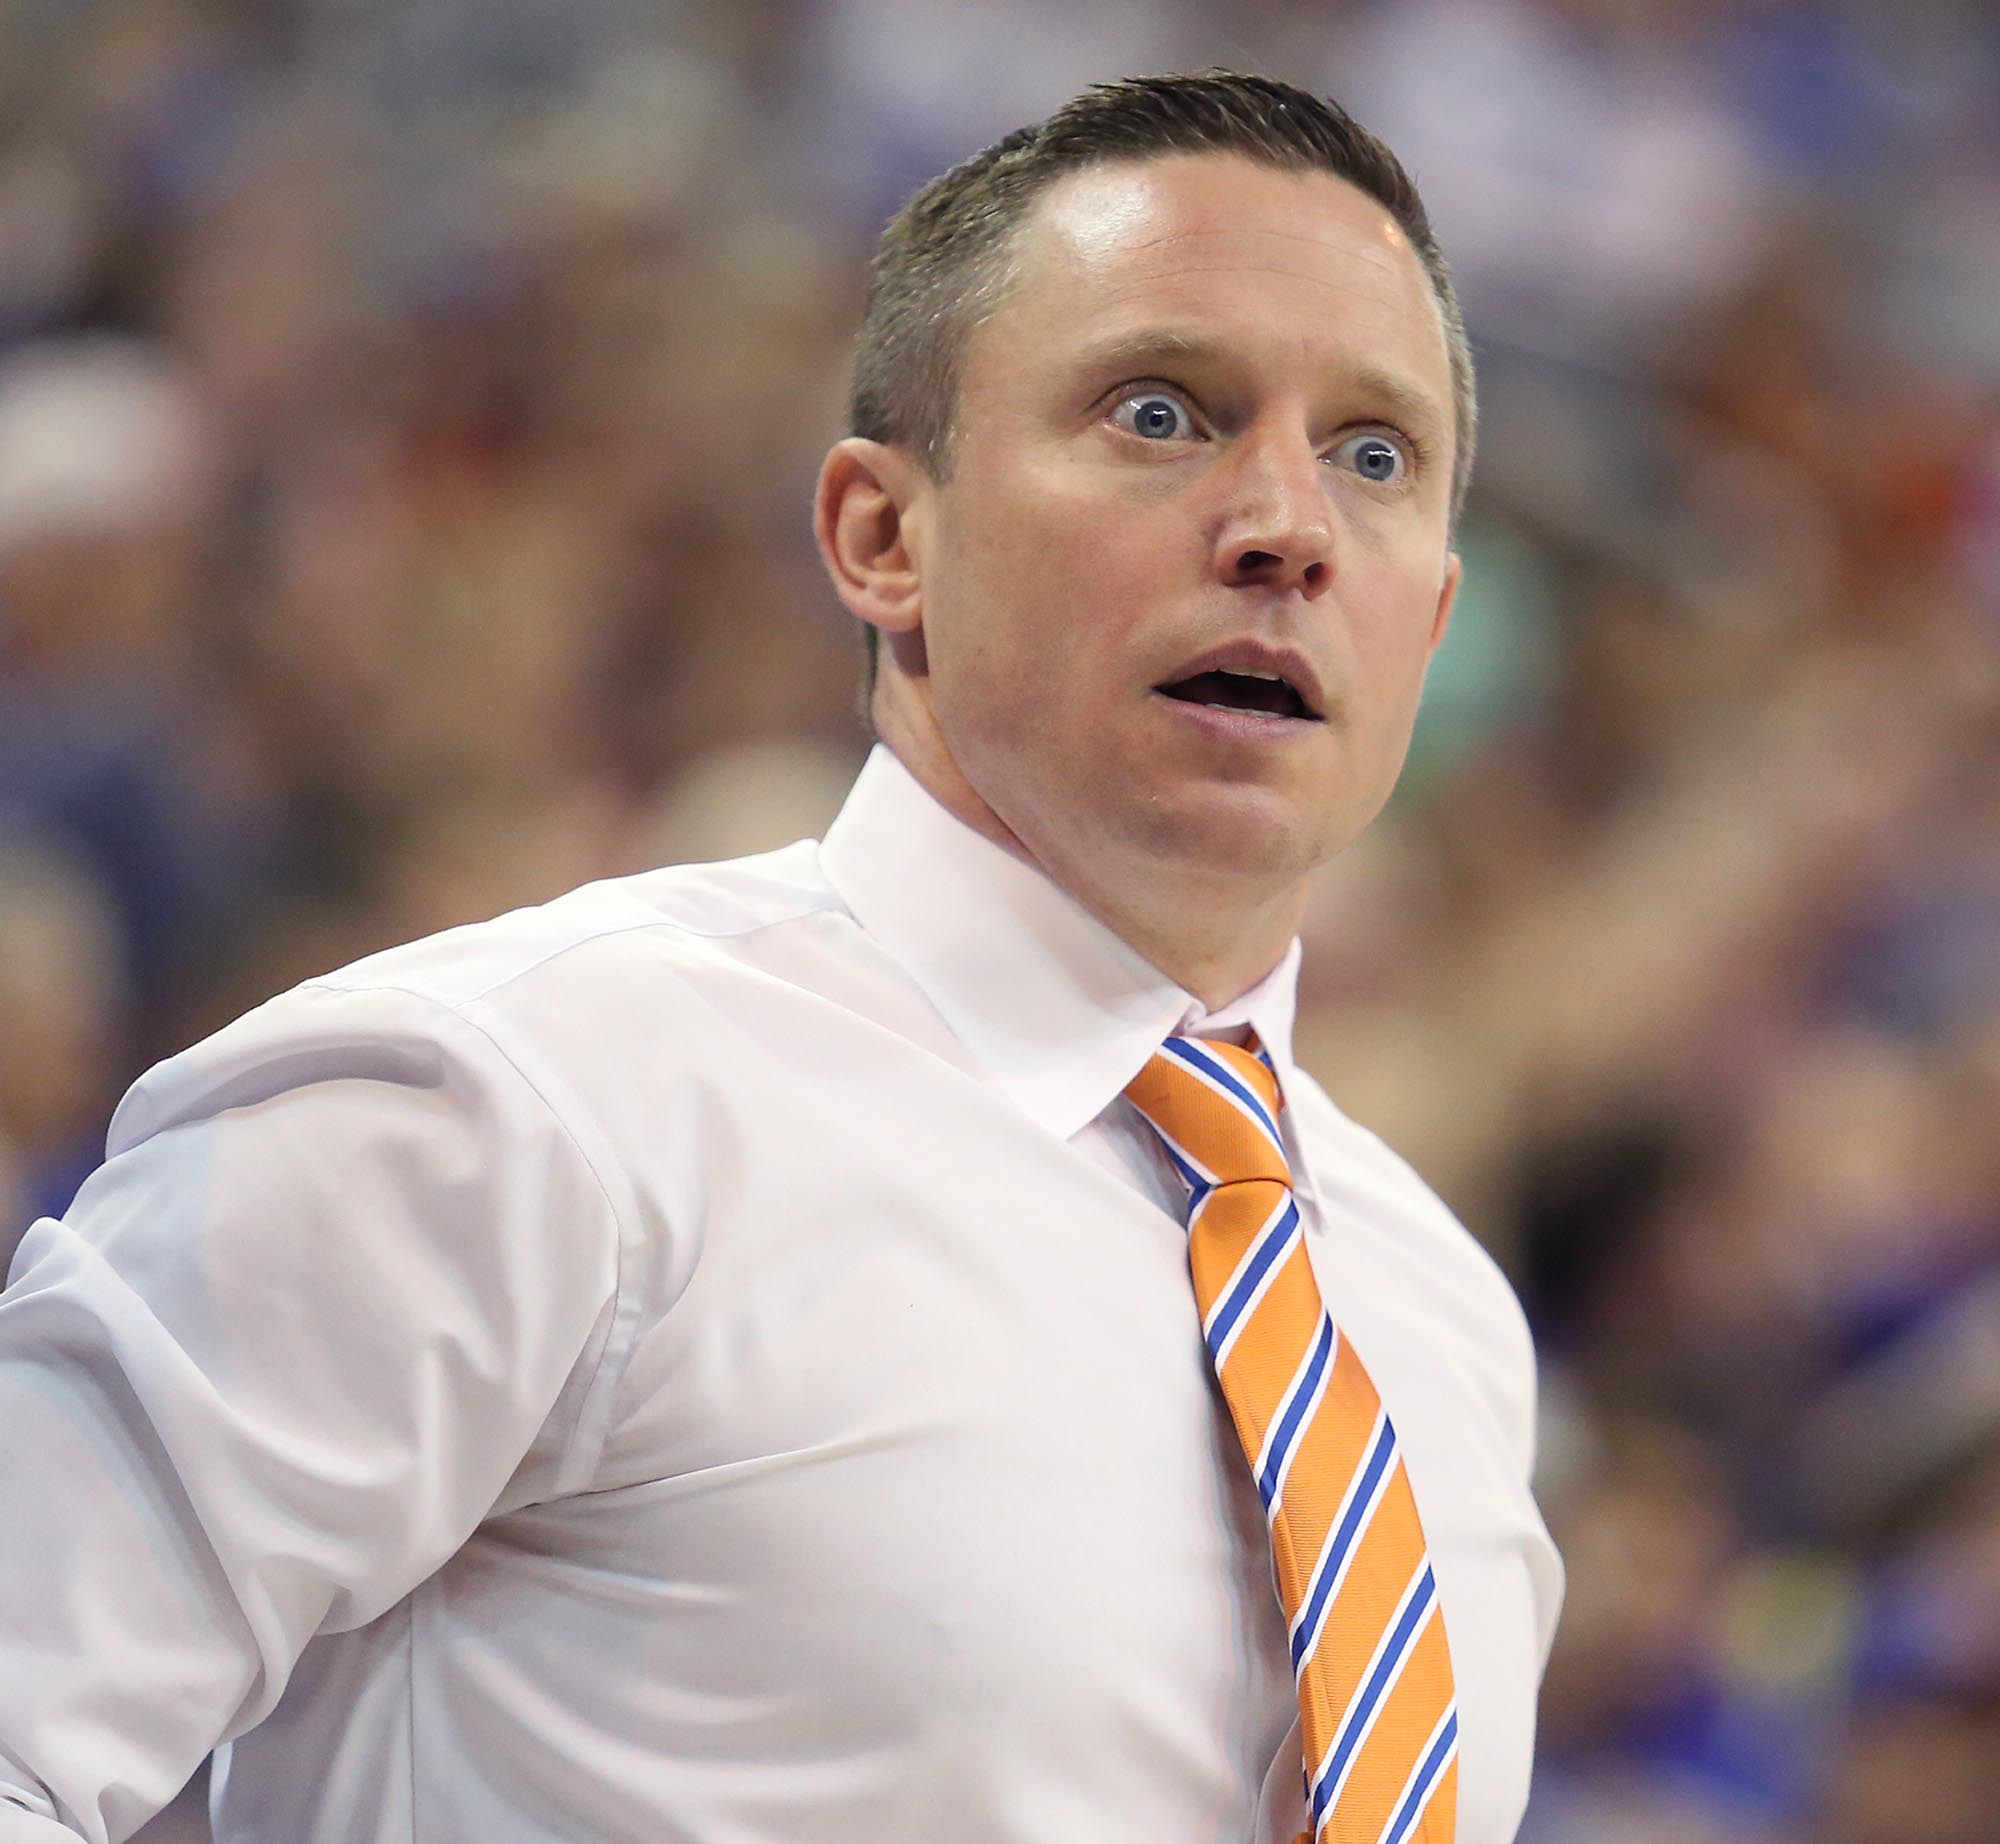 Florida coach Mike White reacts to an official's call during an NCAA college football game against LSU, Saturday, Jan. 9, 2016, in Gainesville, Fla. Florida won 68-62.(Stephen M. Dowell/Orlando Sentinel via AP) MAGS OUT; NO SALES; MANDATORY CREDIT